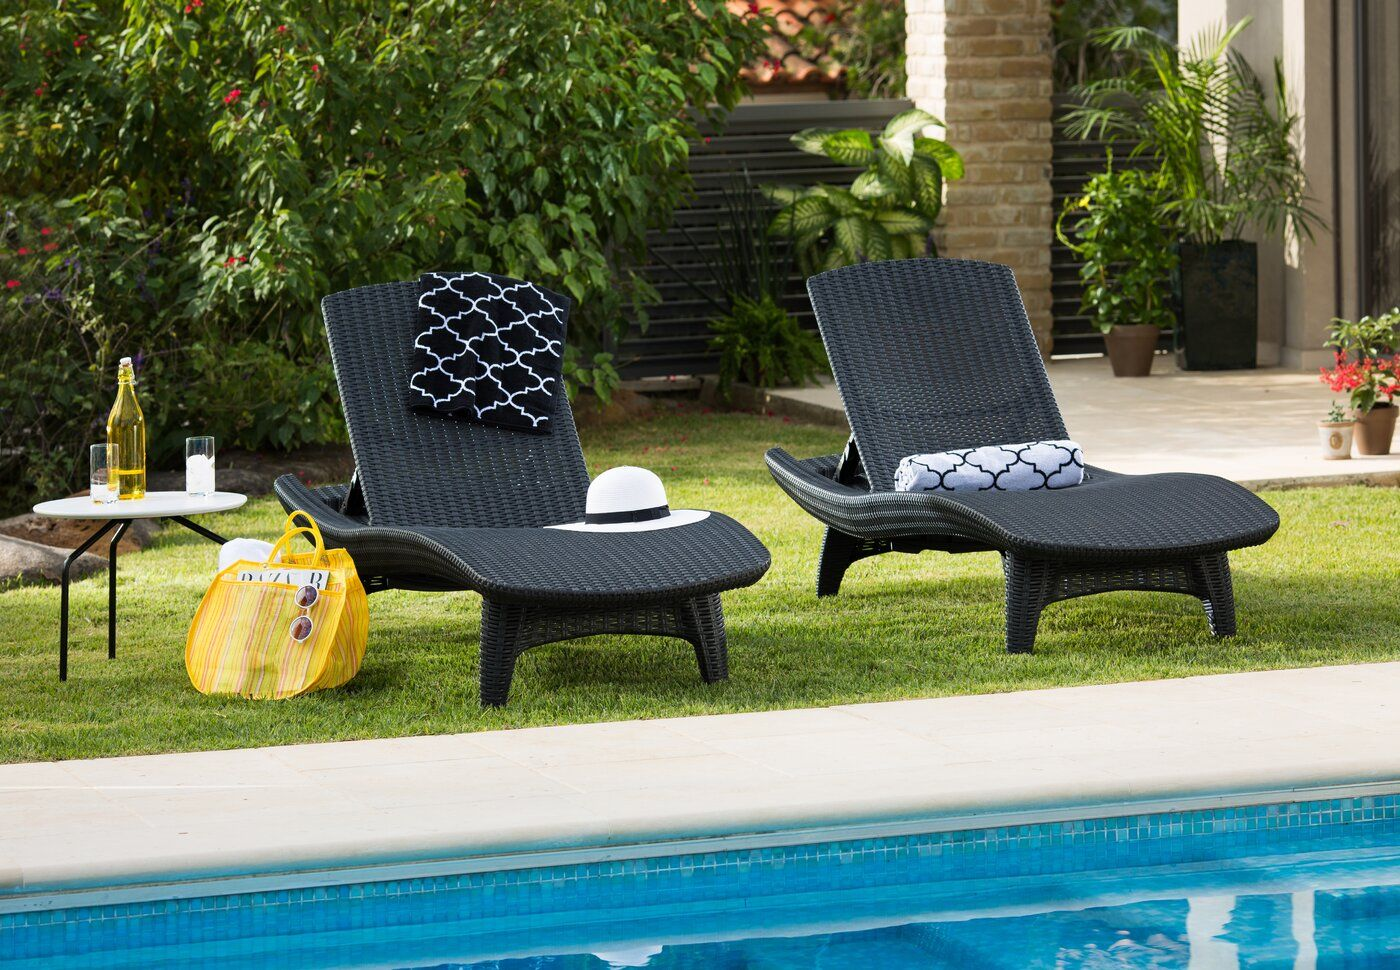 Clarita Sun Reclining Chaise Lounge Patio Chaise Lounge Lounge